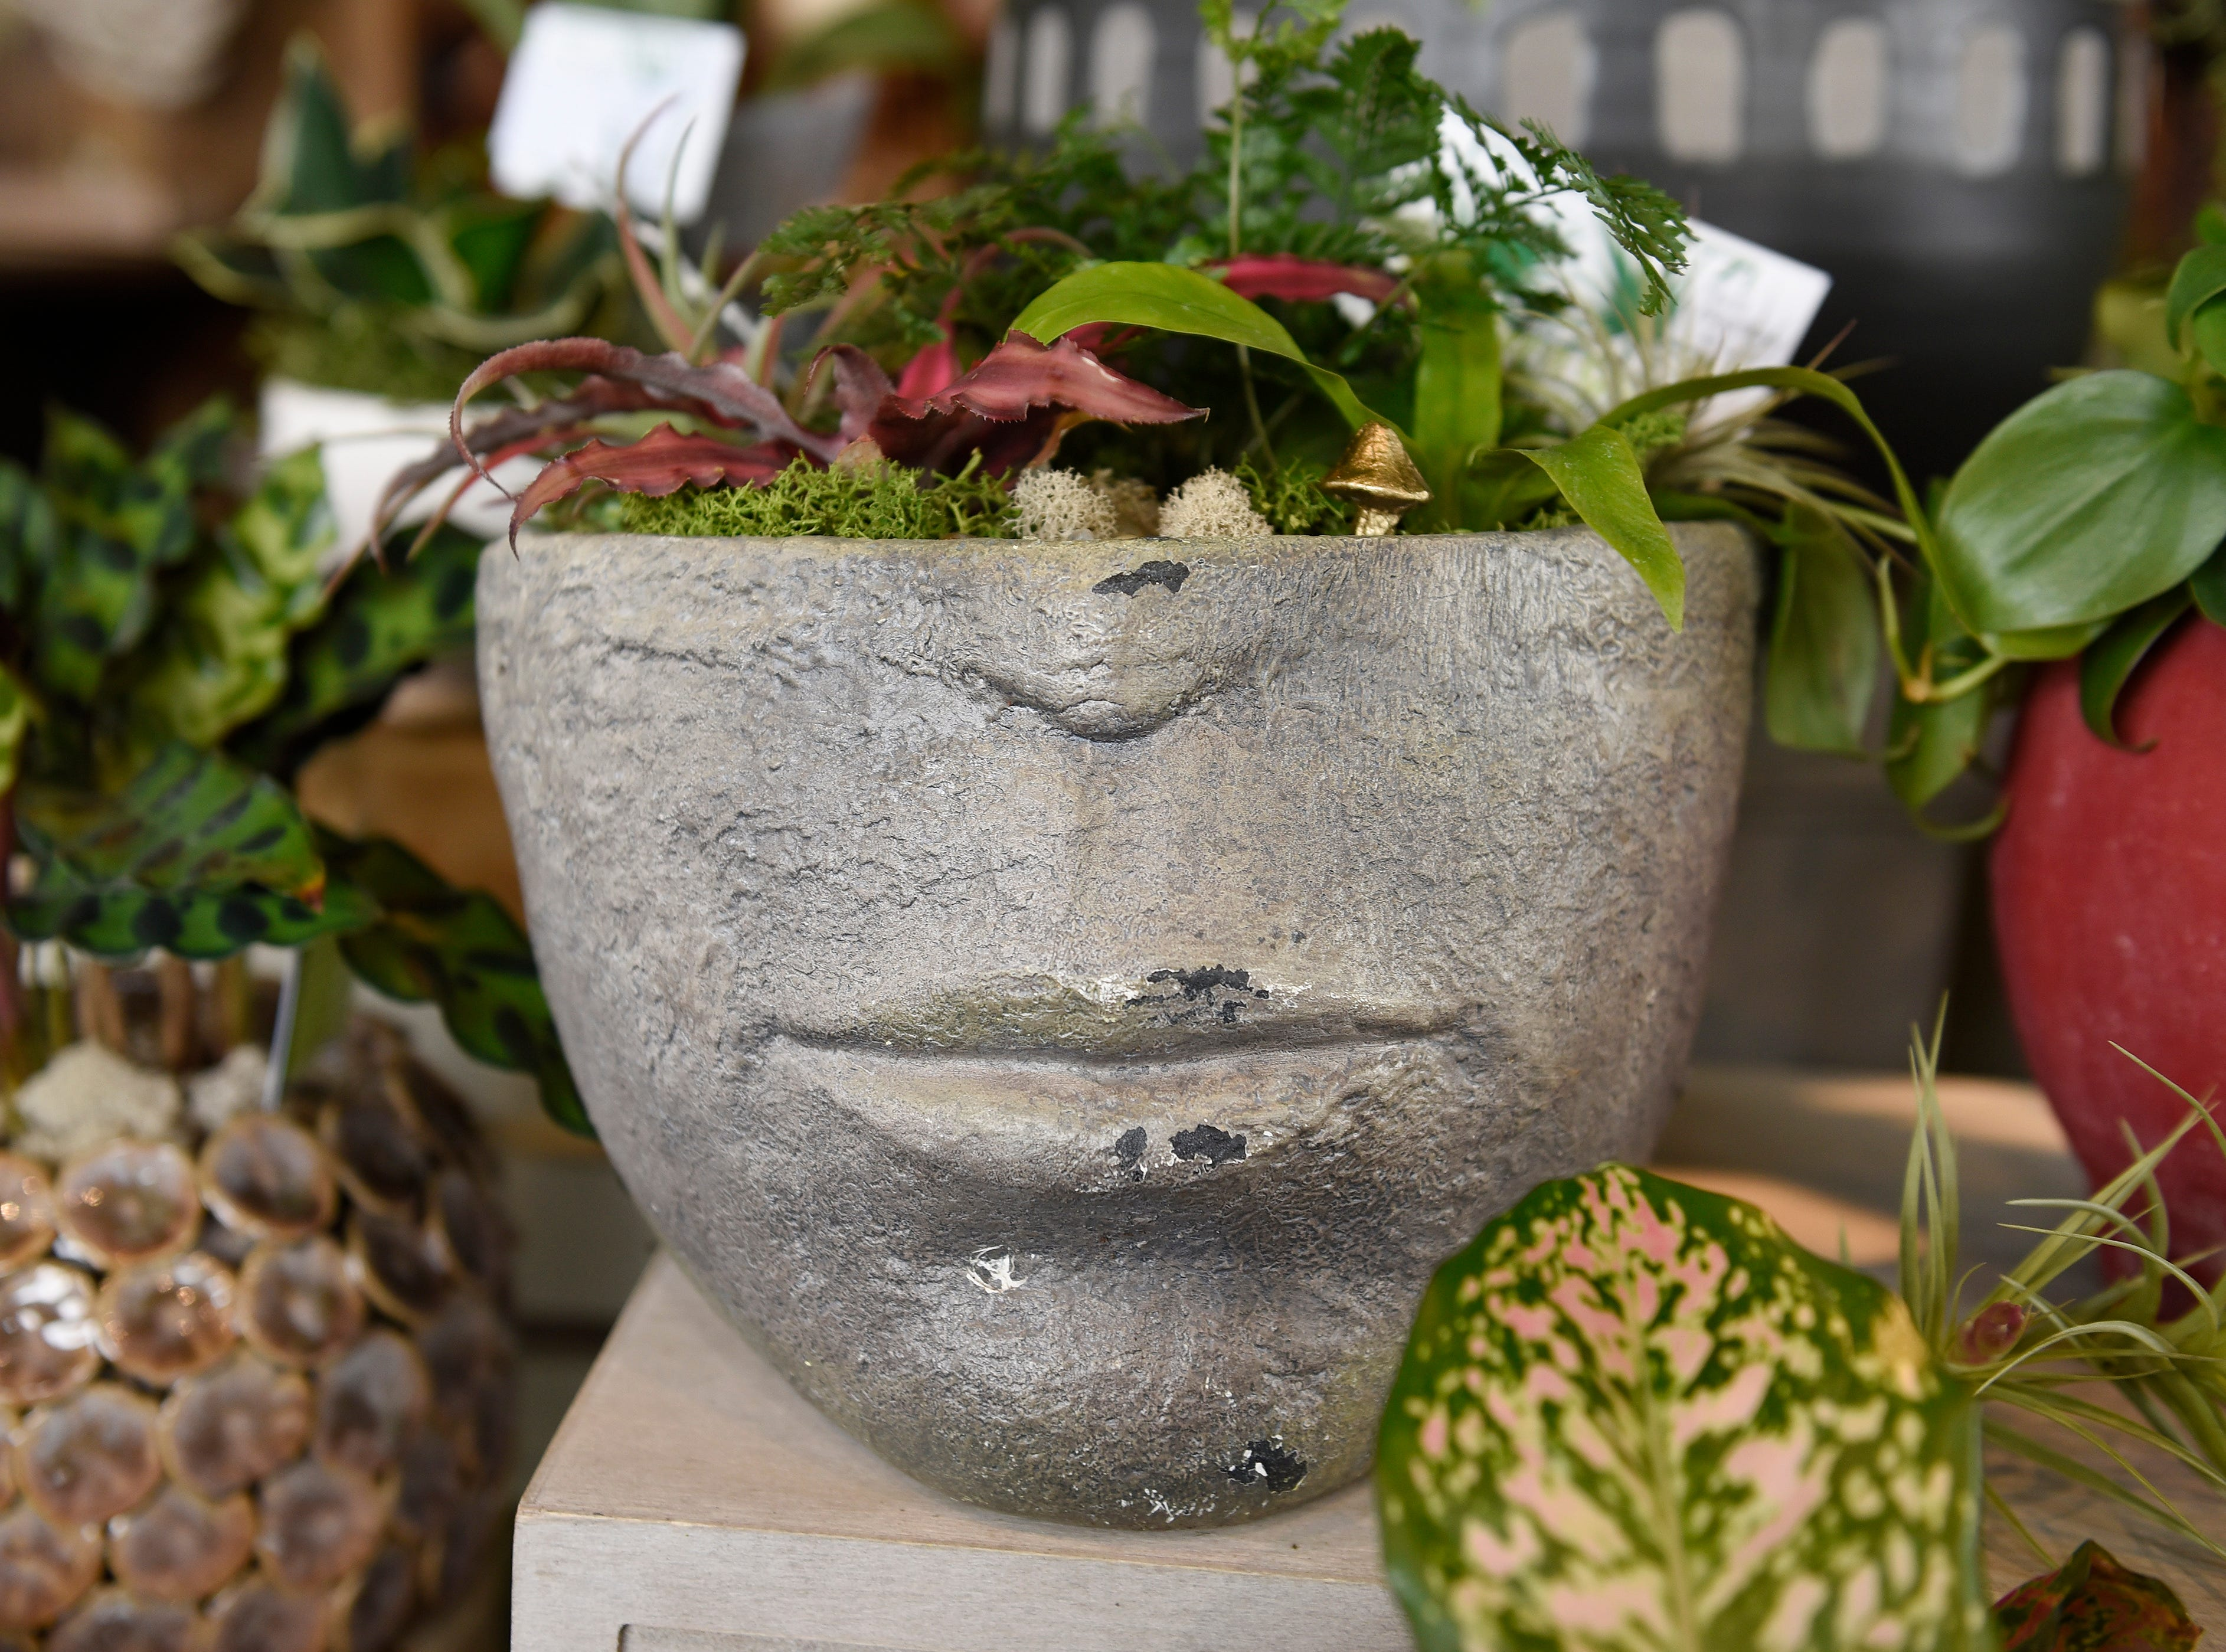 Planters at Southern Green range from $16 to $99.